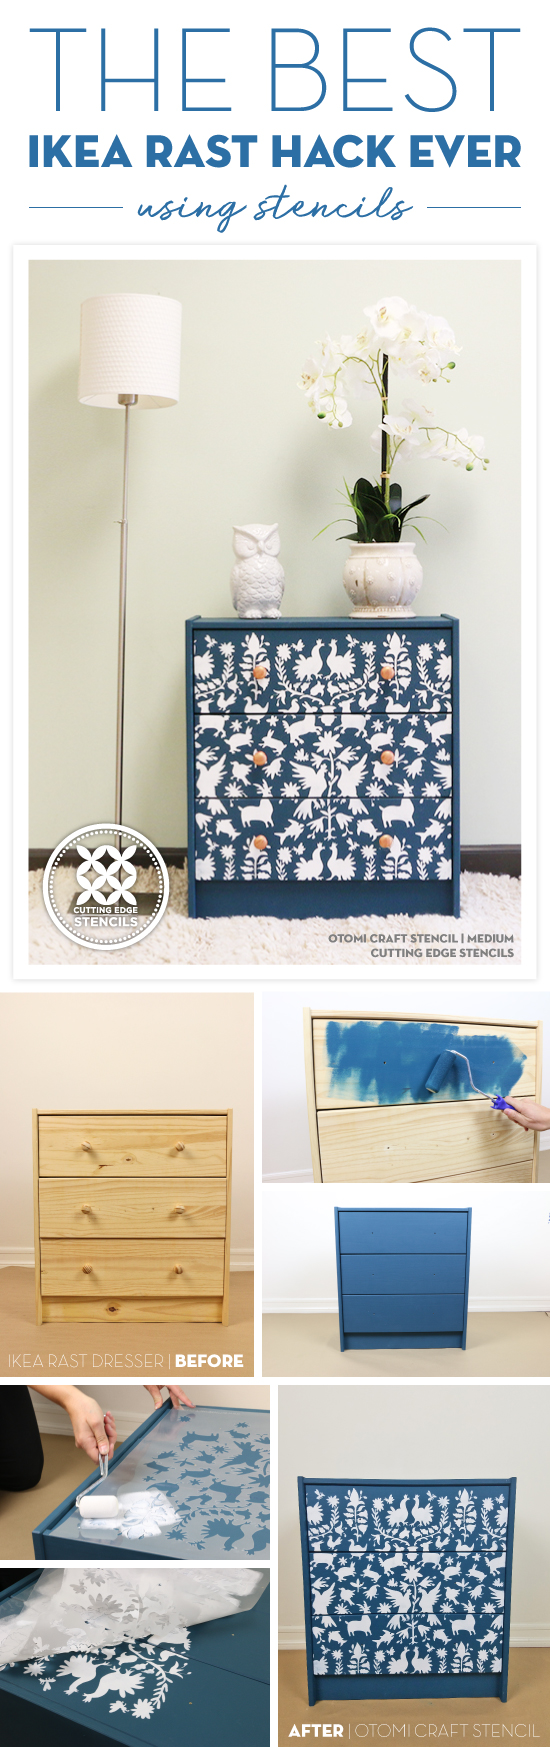 Cutting Edge Stencils shares how to personalize a $35 Ikea RAST using our Otomi Craft Stencil and Benjamin Moore paint. http://www.cuttingedgestencils.com/otomi-pattern-craft-stencil-DIY-home-decor-project.html